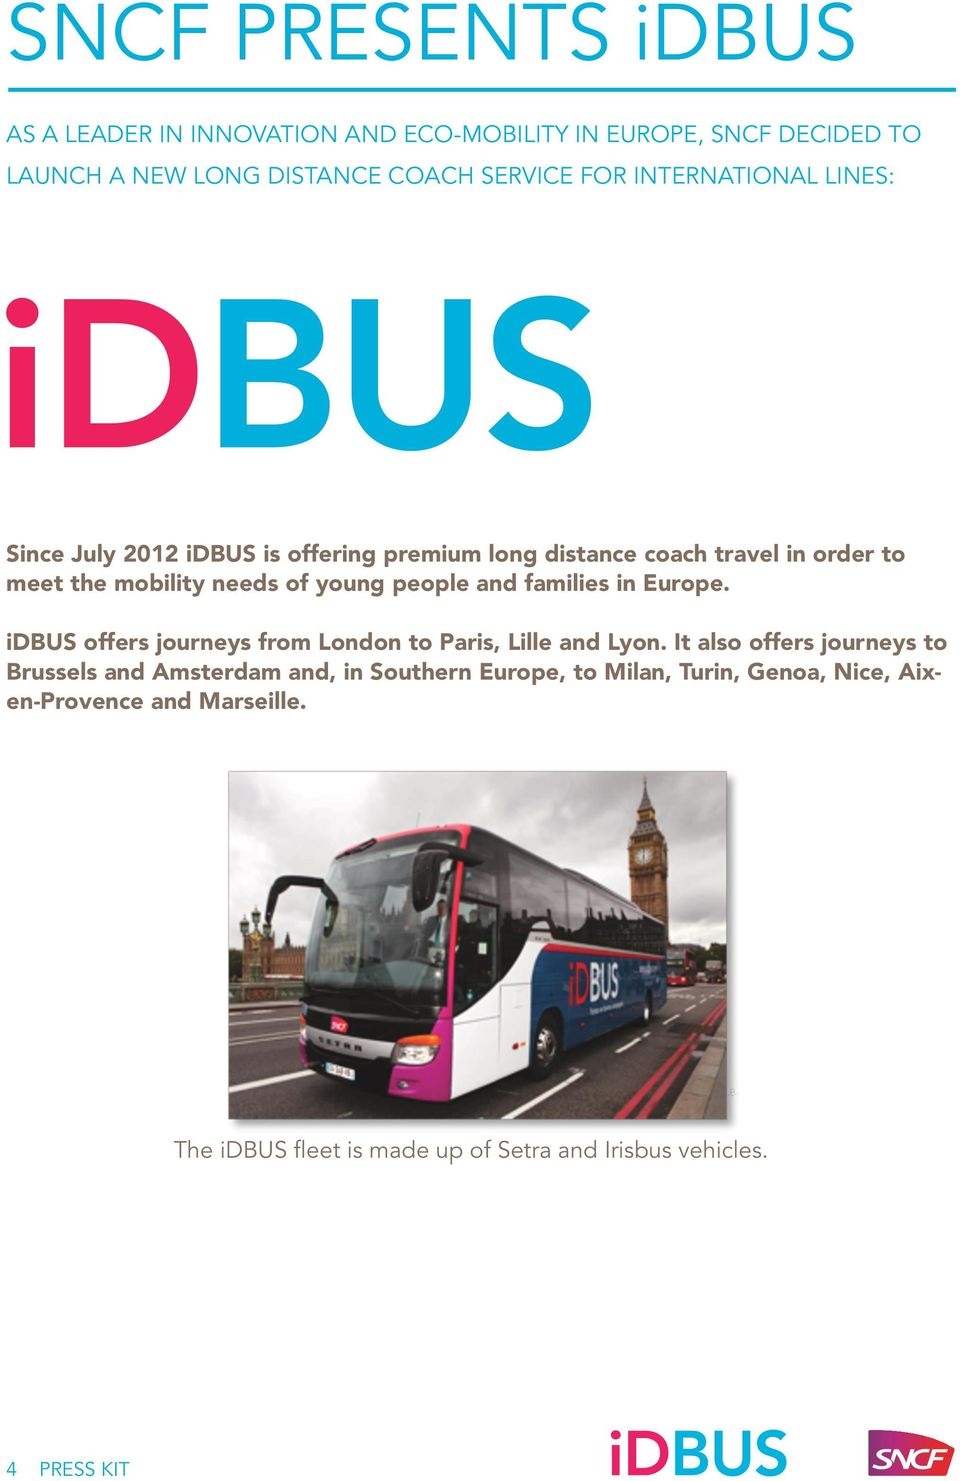 and families in Europe. idbus offers journeys from London to Paris, Lille and Lyon.